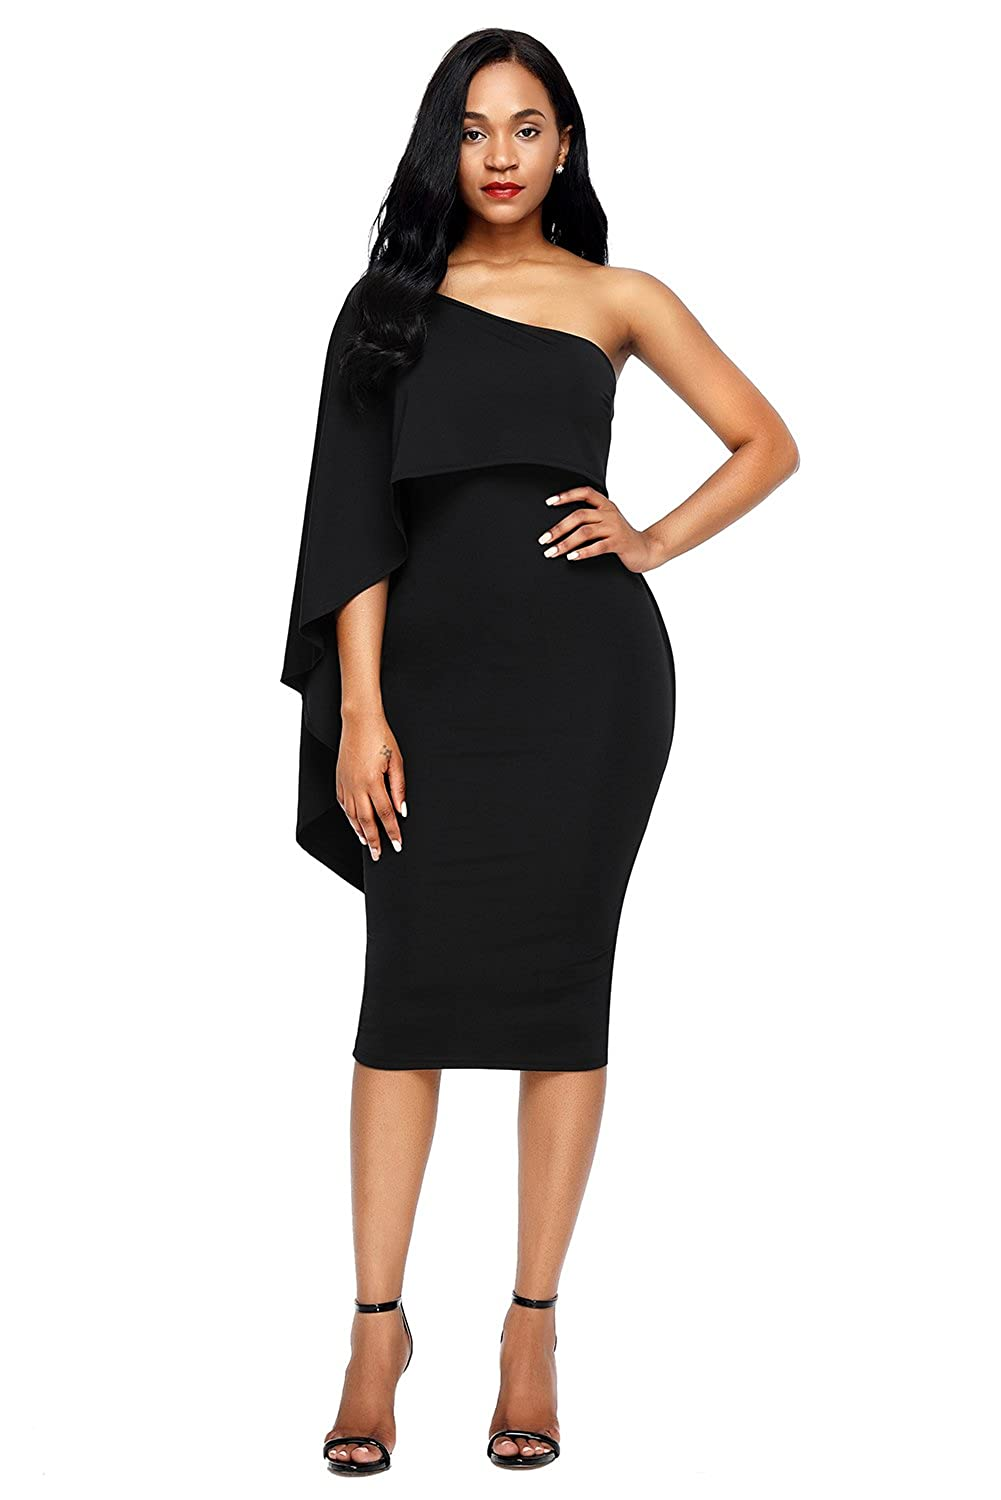 cf49da32ad5 Solid One Shoulder Bodycon Dress Knee Length Cape Ruffle Evening Party Dress  Garment Care  Machine Washable Package Contents 1 x Cocktail Party Dress